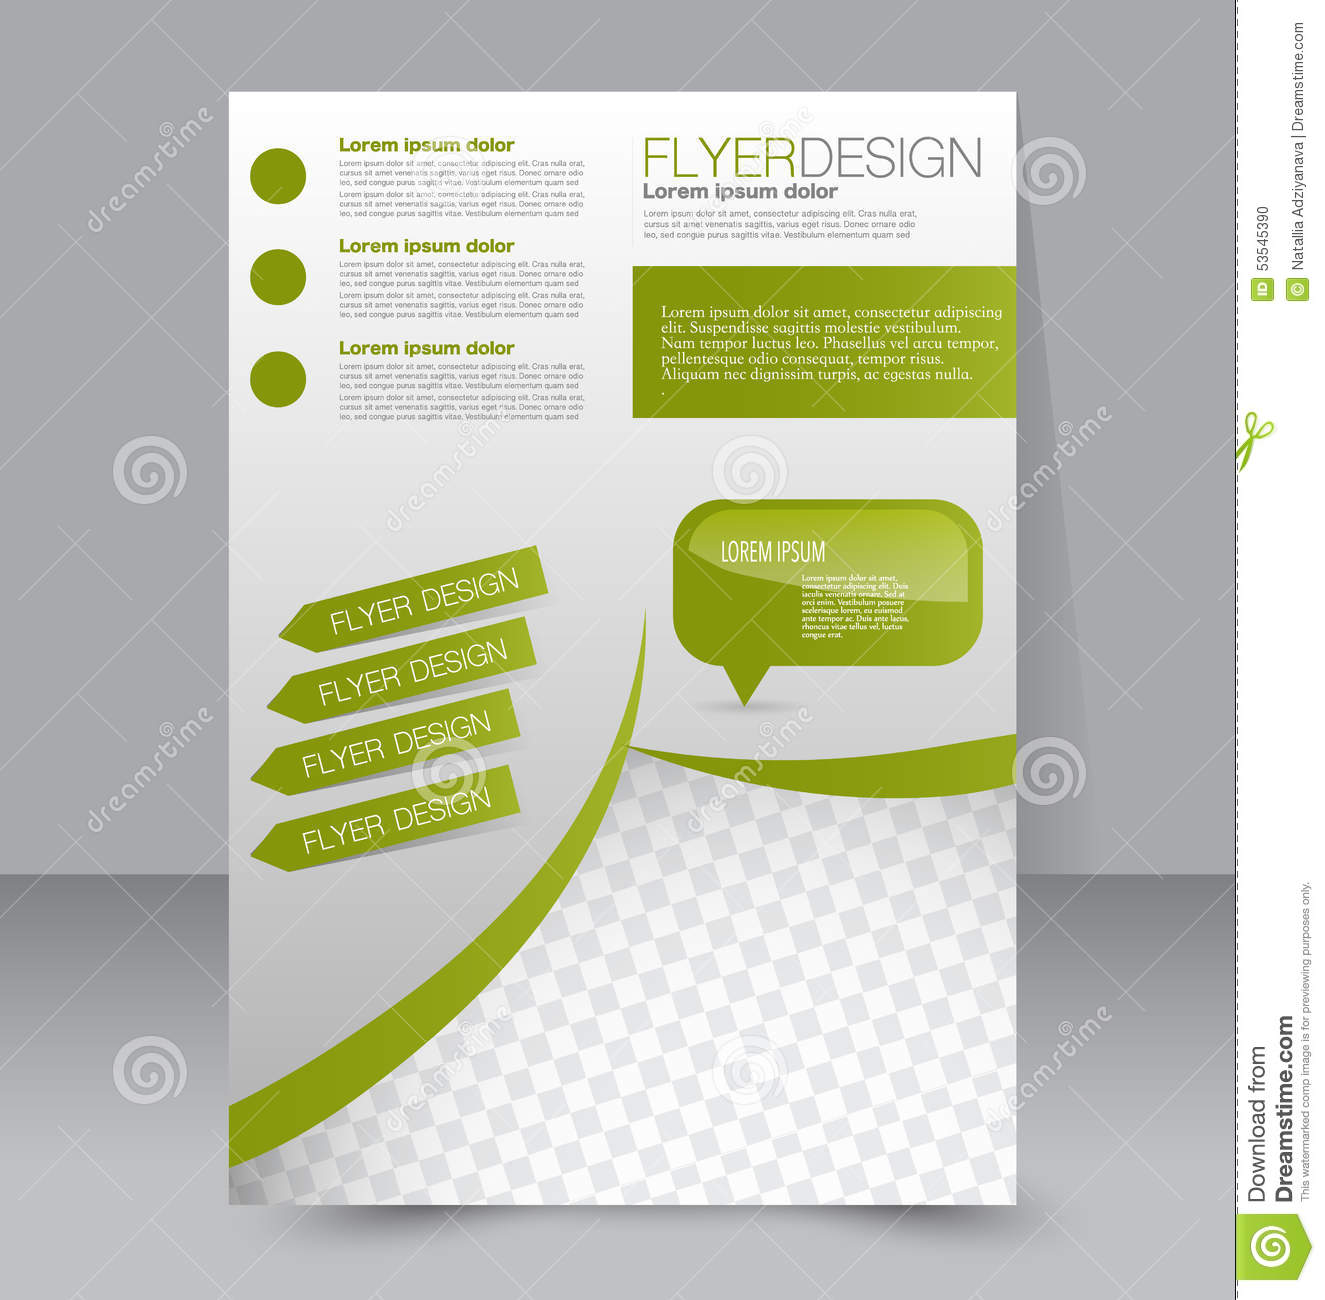 Poster design education - Poster Design Template Brochure Business Cover Design Editable Education Flyer Magazine Poster Presentation Template